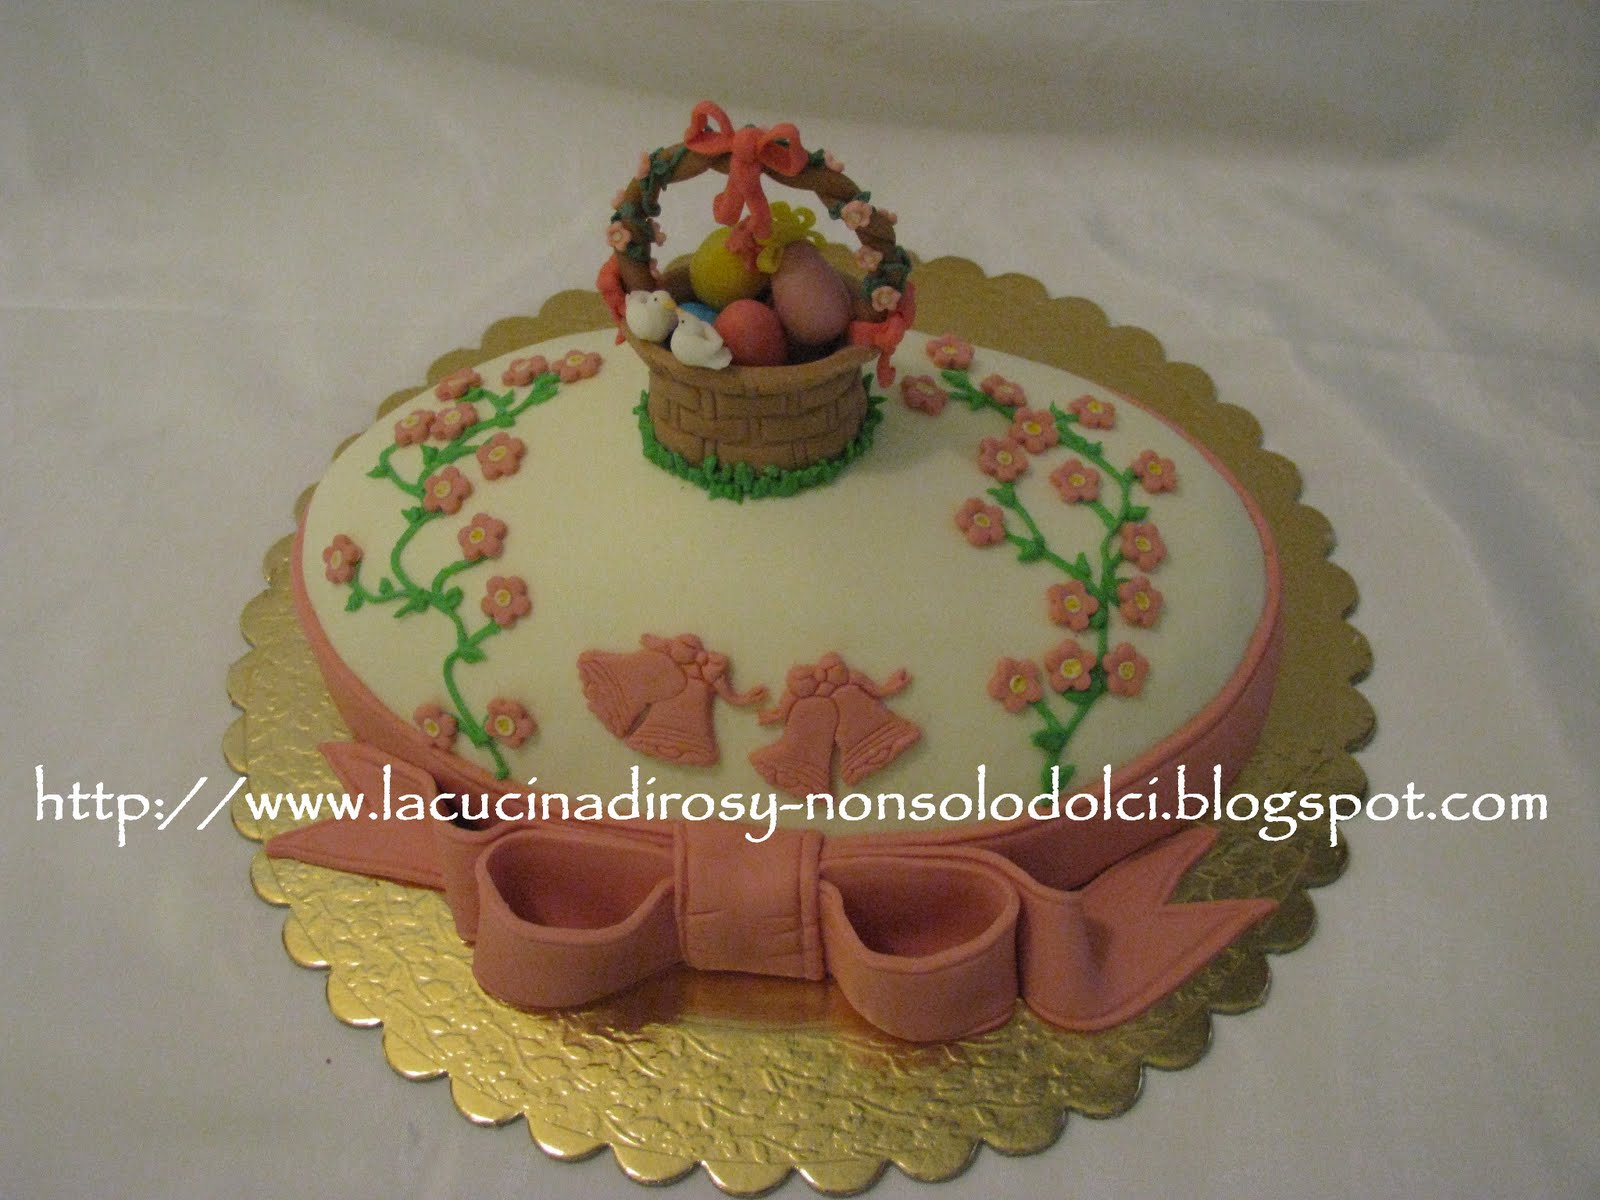 Le torte decorate di rosy torta uovo di pasqua for Decorazioni torte ladybug